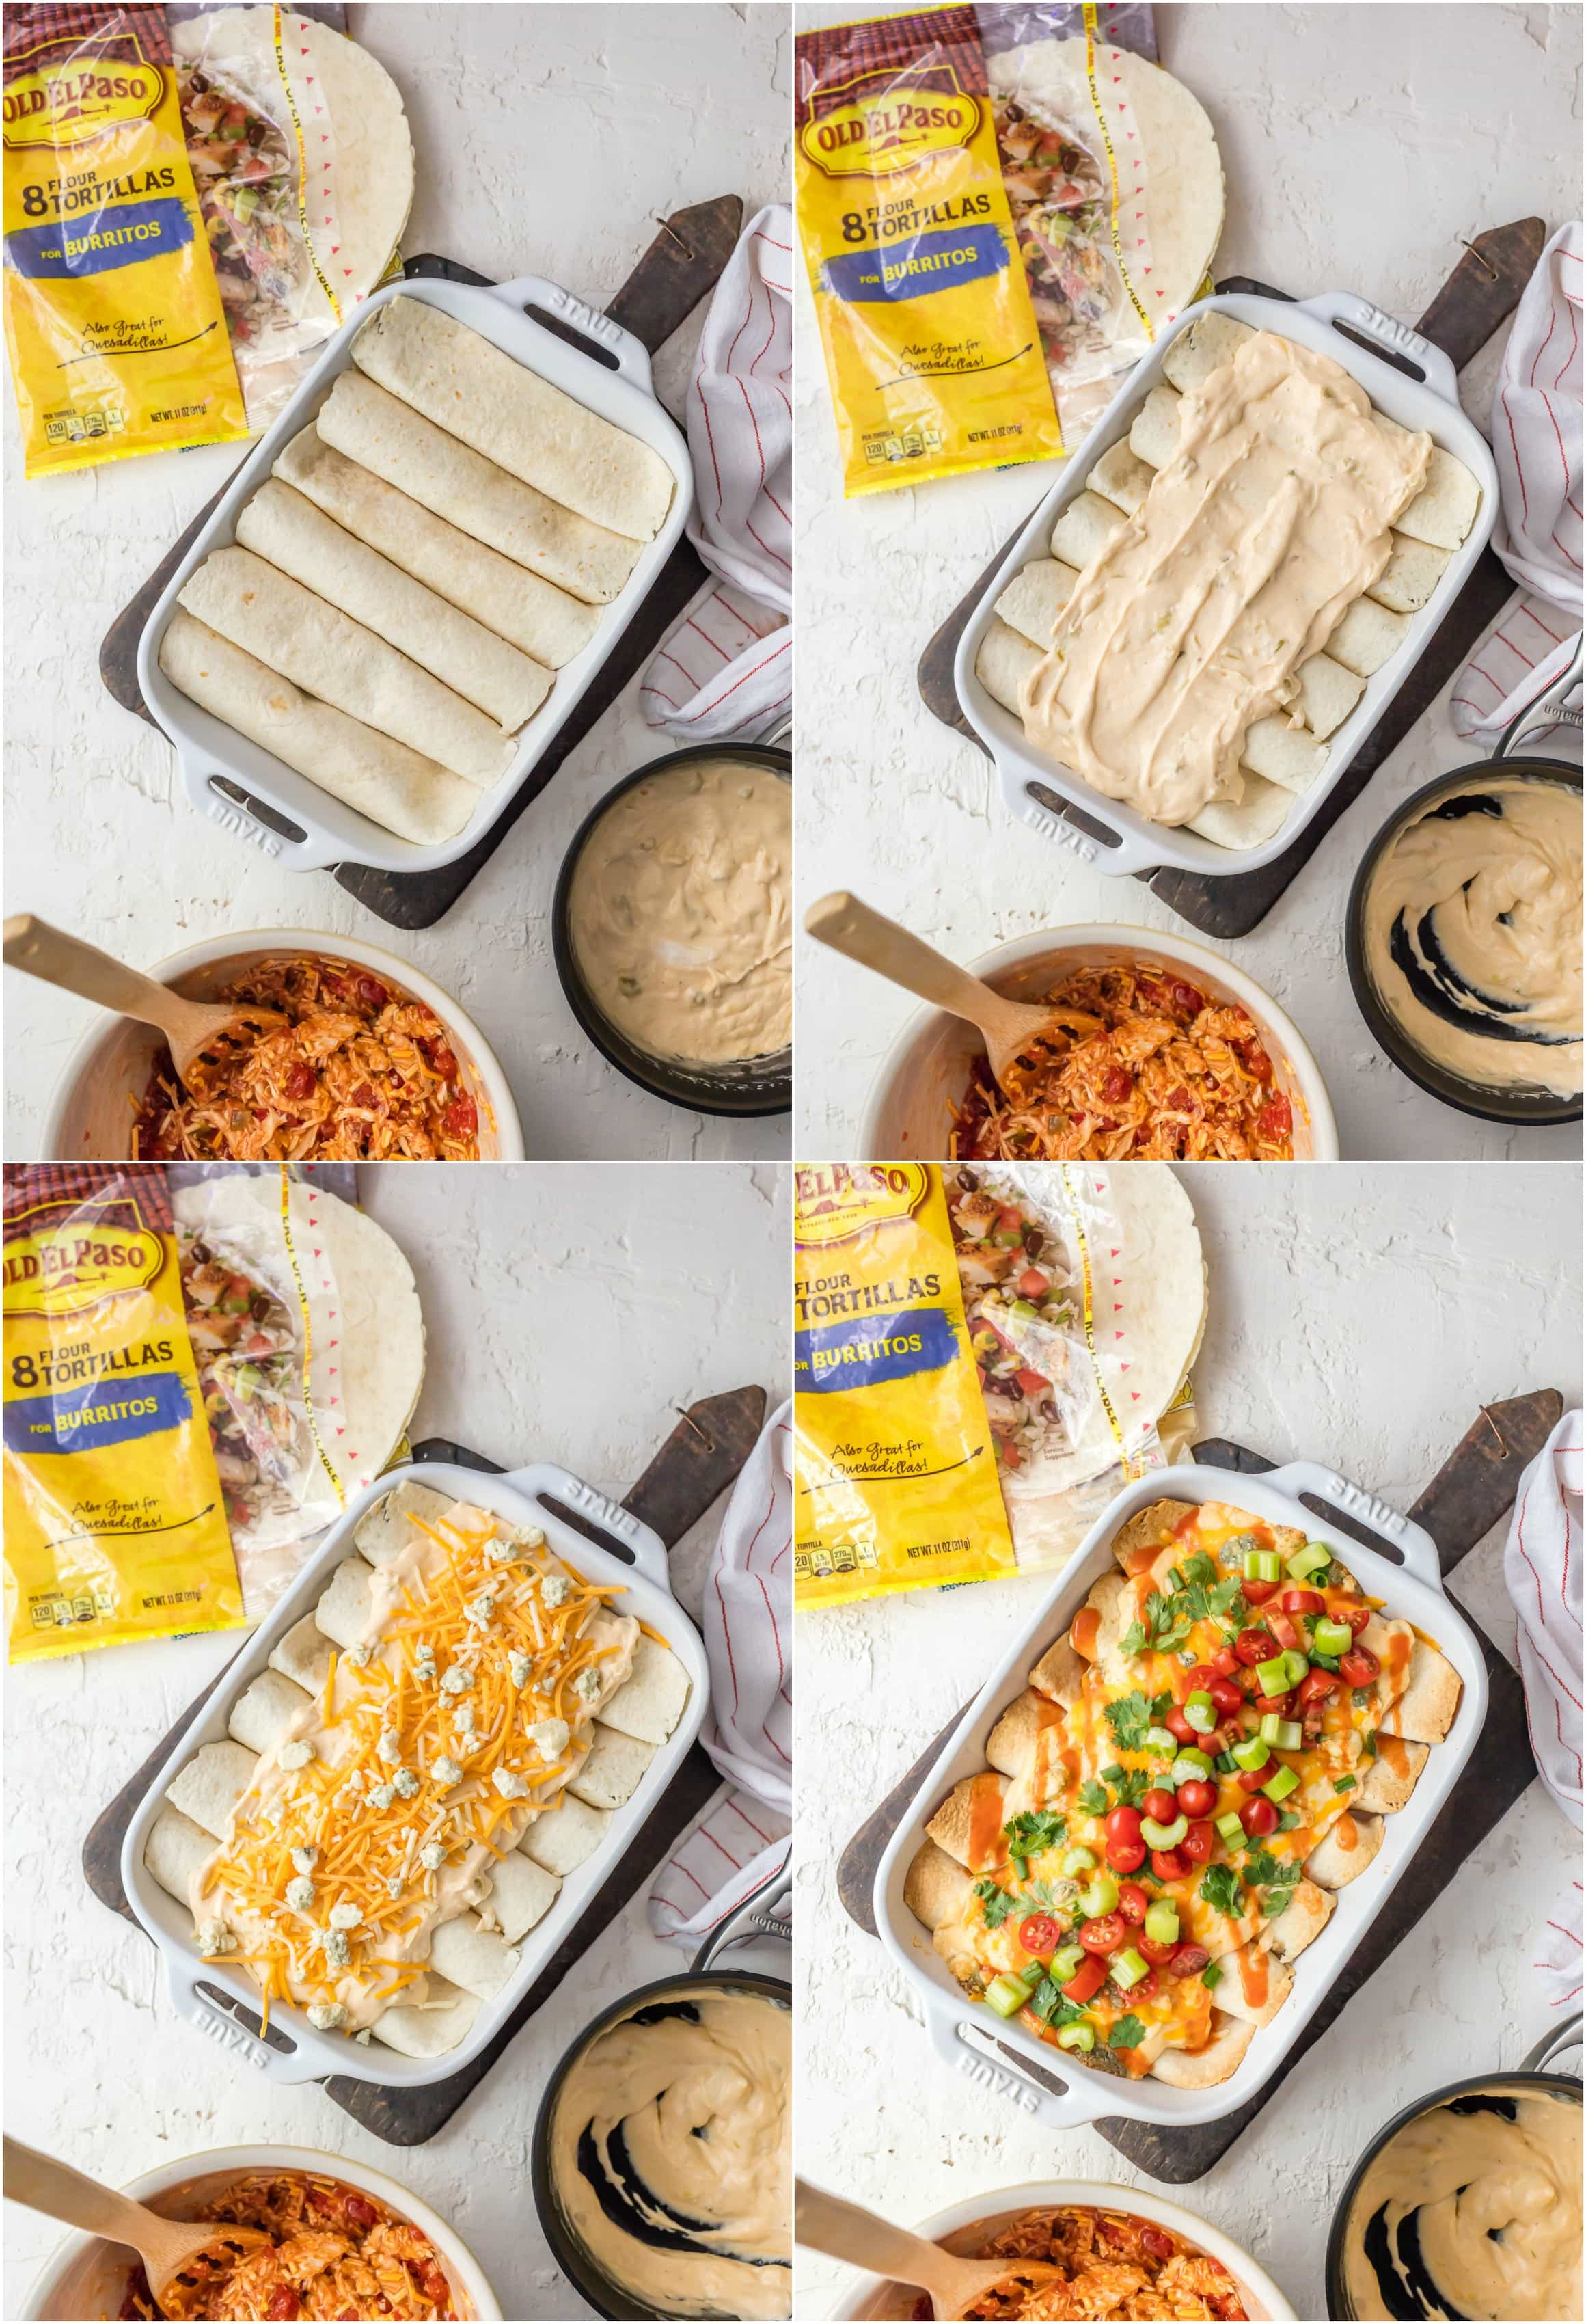 Creamy Buffalo Chicken Enchiladas are SO EASY and delicious. The perfect amount of creamy and spicy. They're loaded with buffalo chicken and then topped with a celery and blue cheese cream cheese queso! Sure to please!